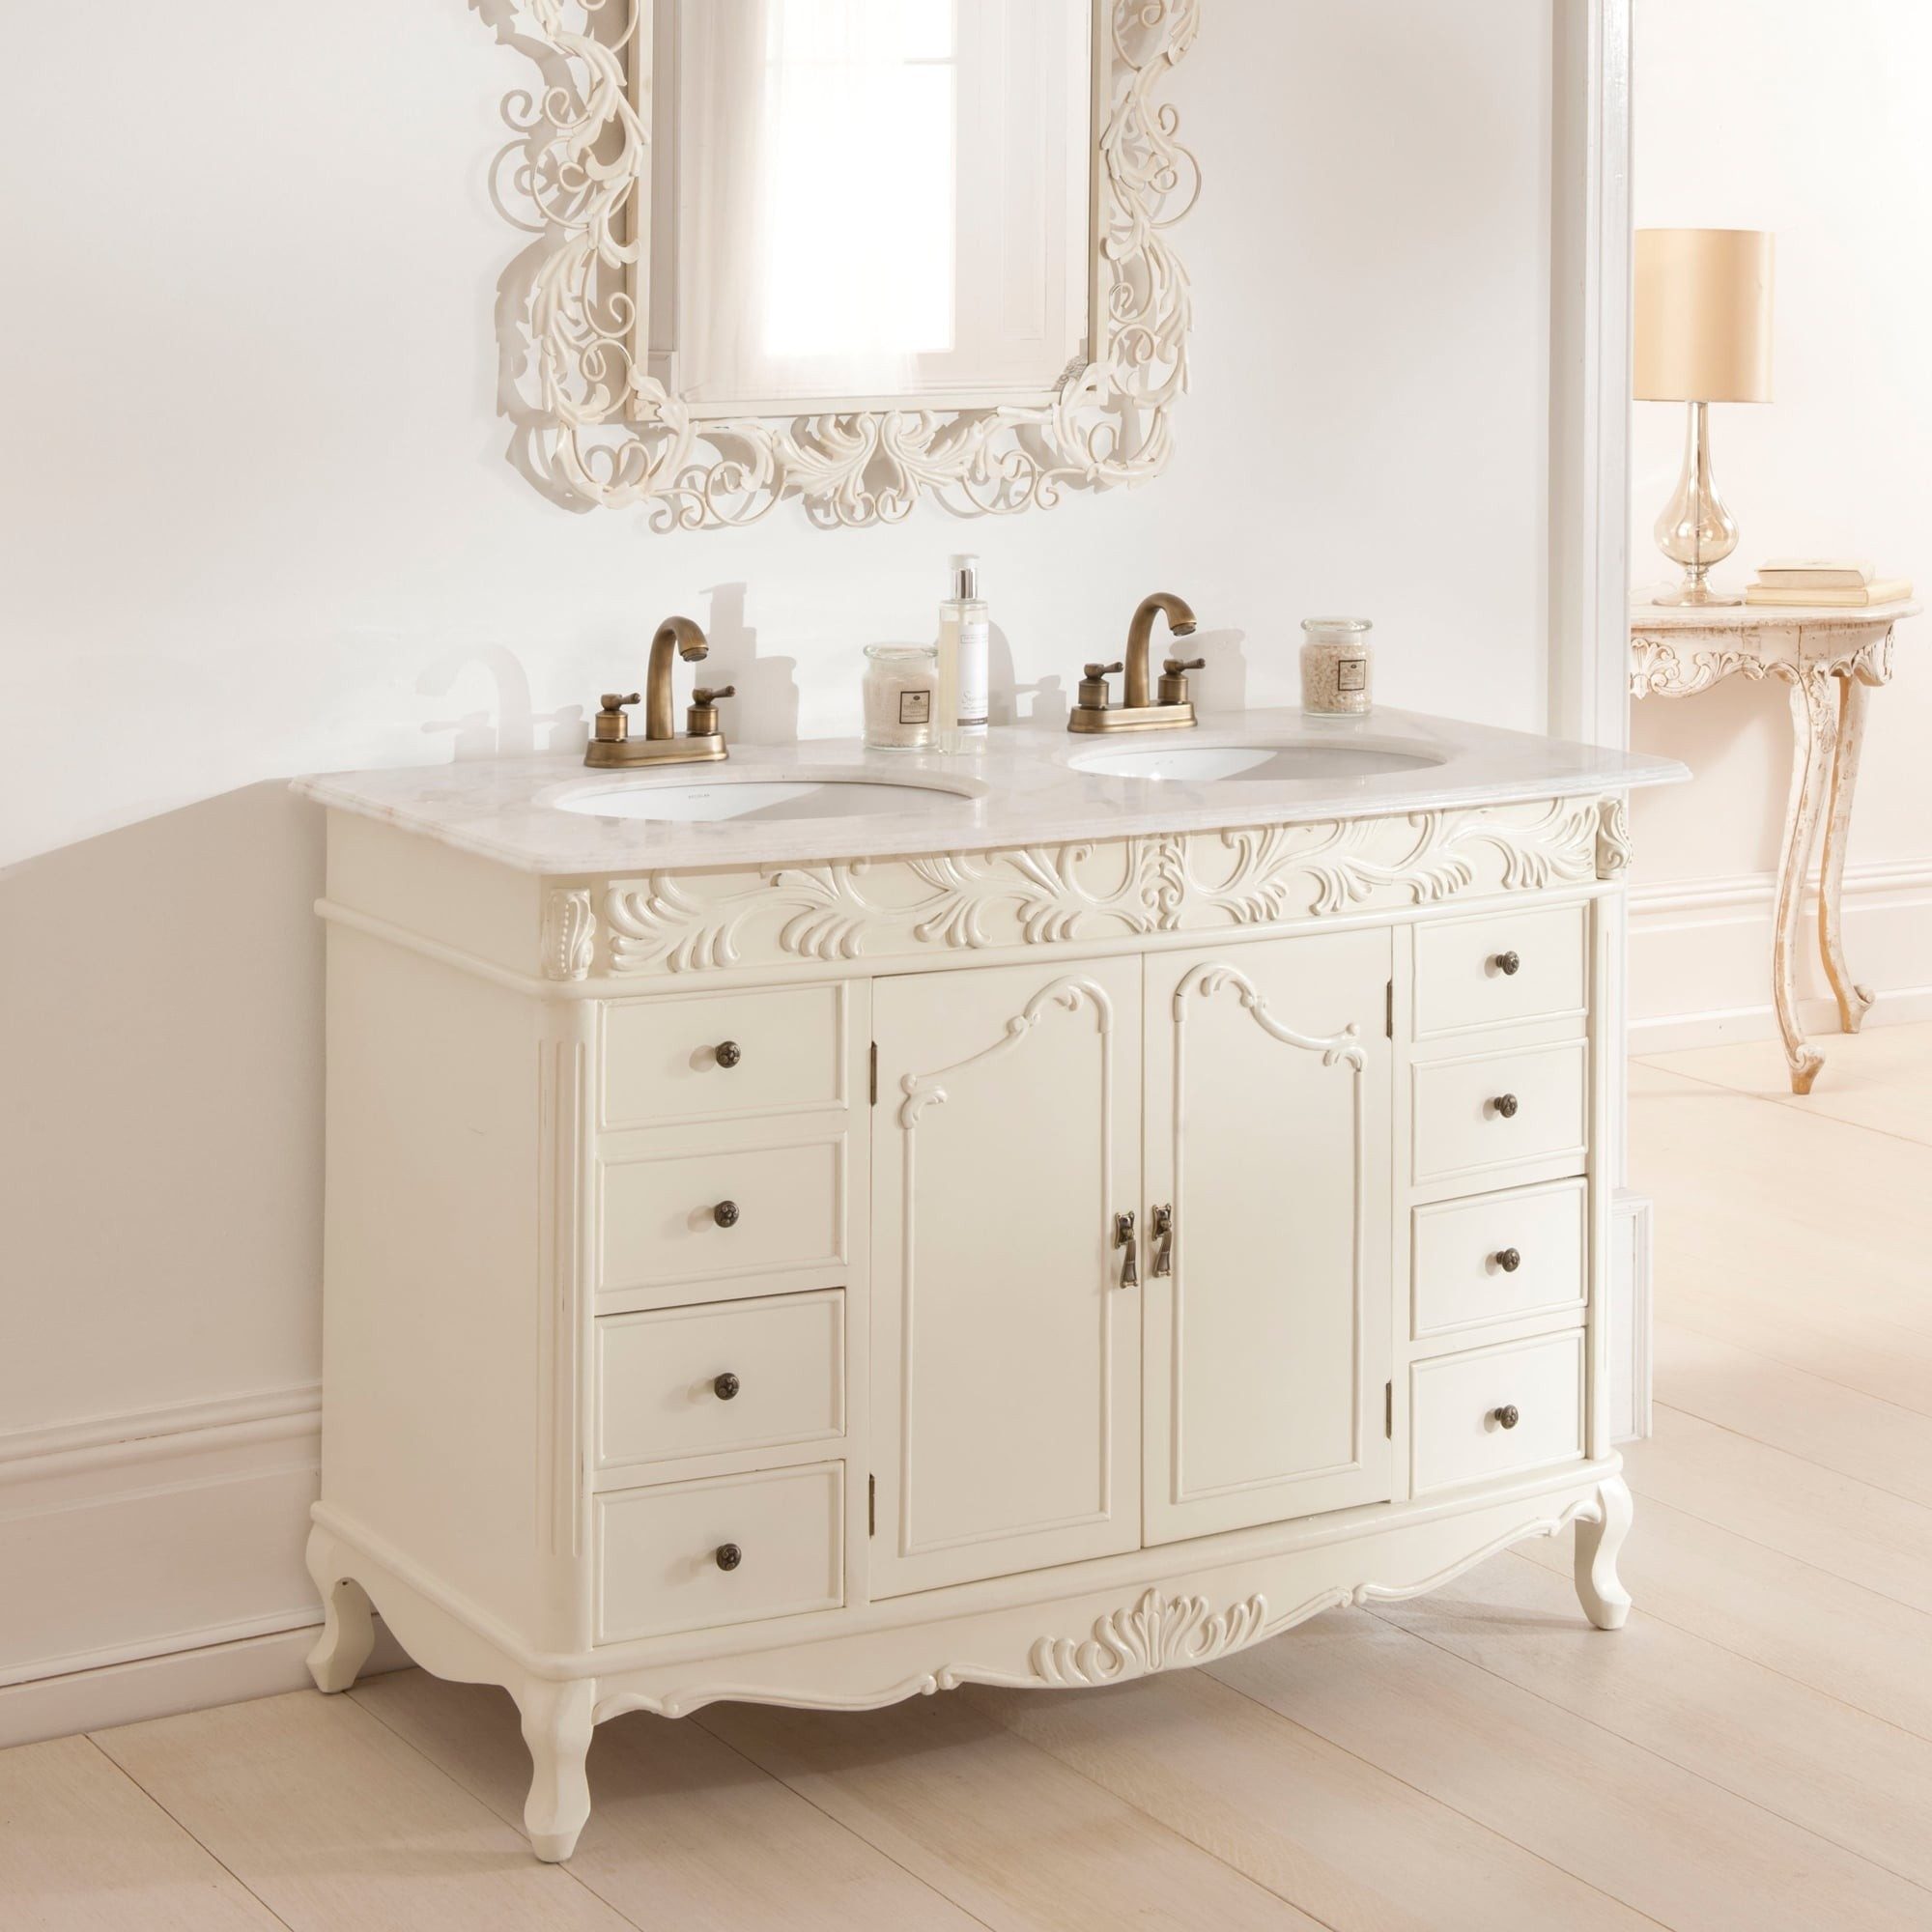 French Bathroom Vanity Cool Double Antique French Vanity Unit Picture